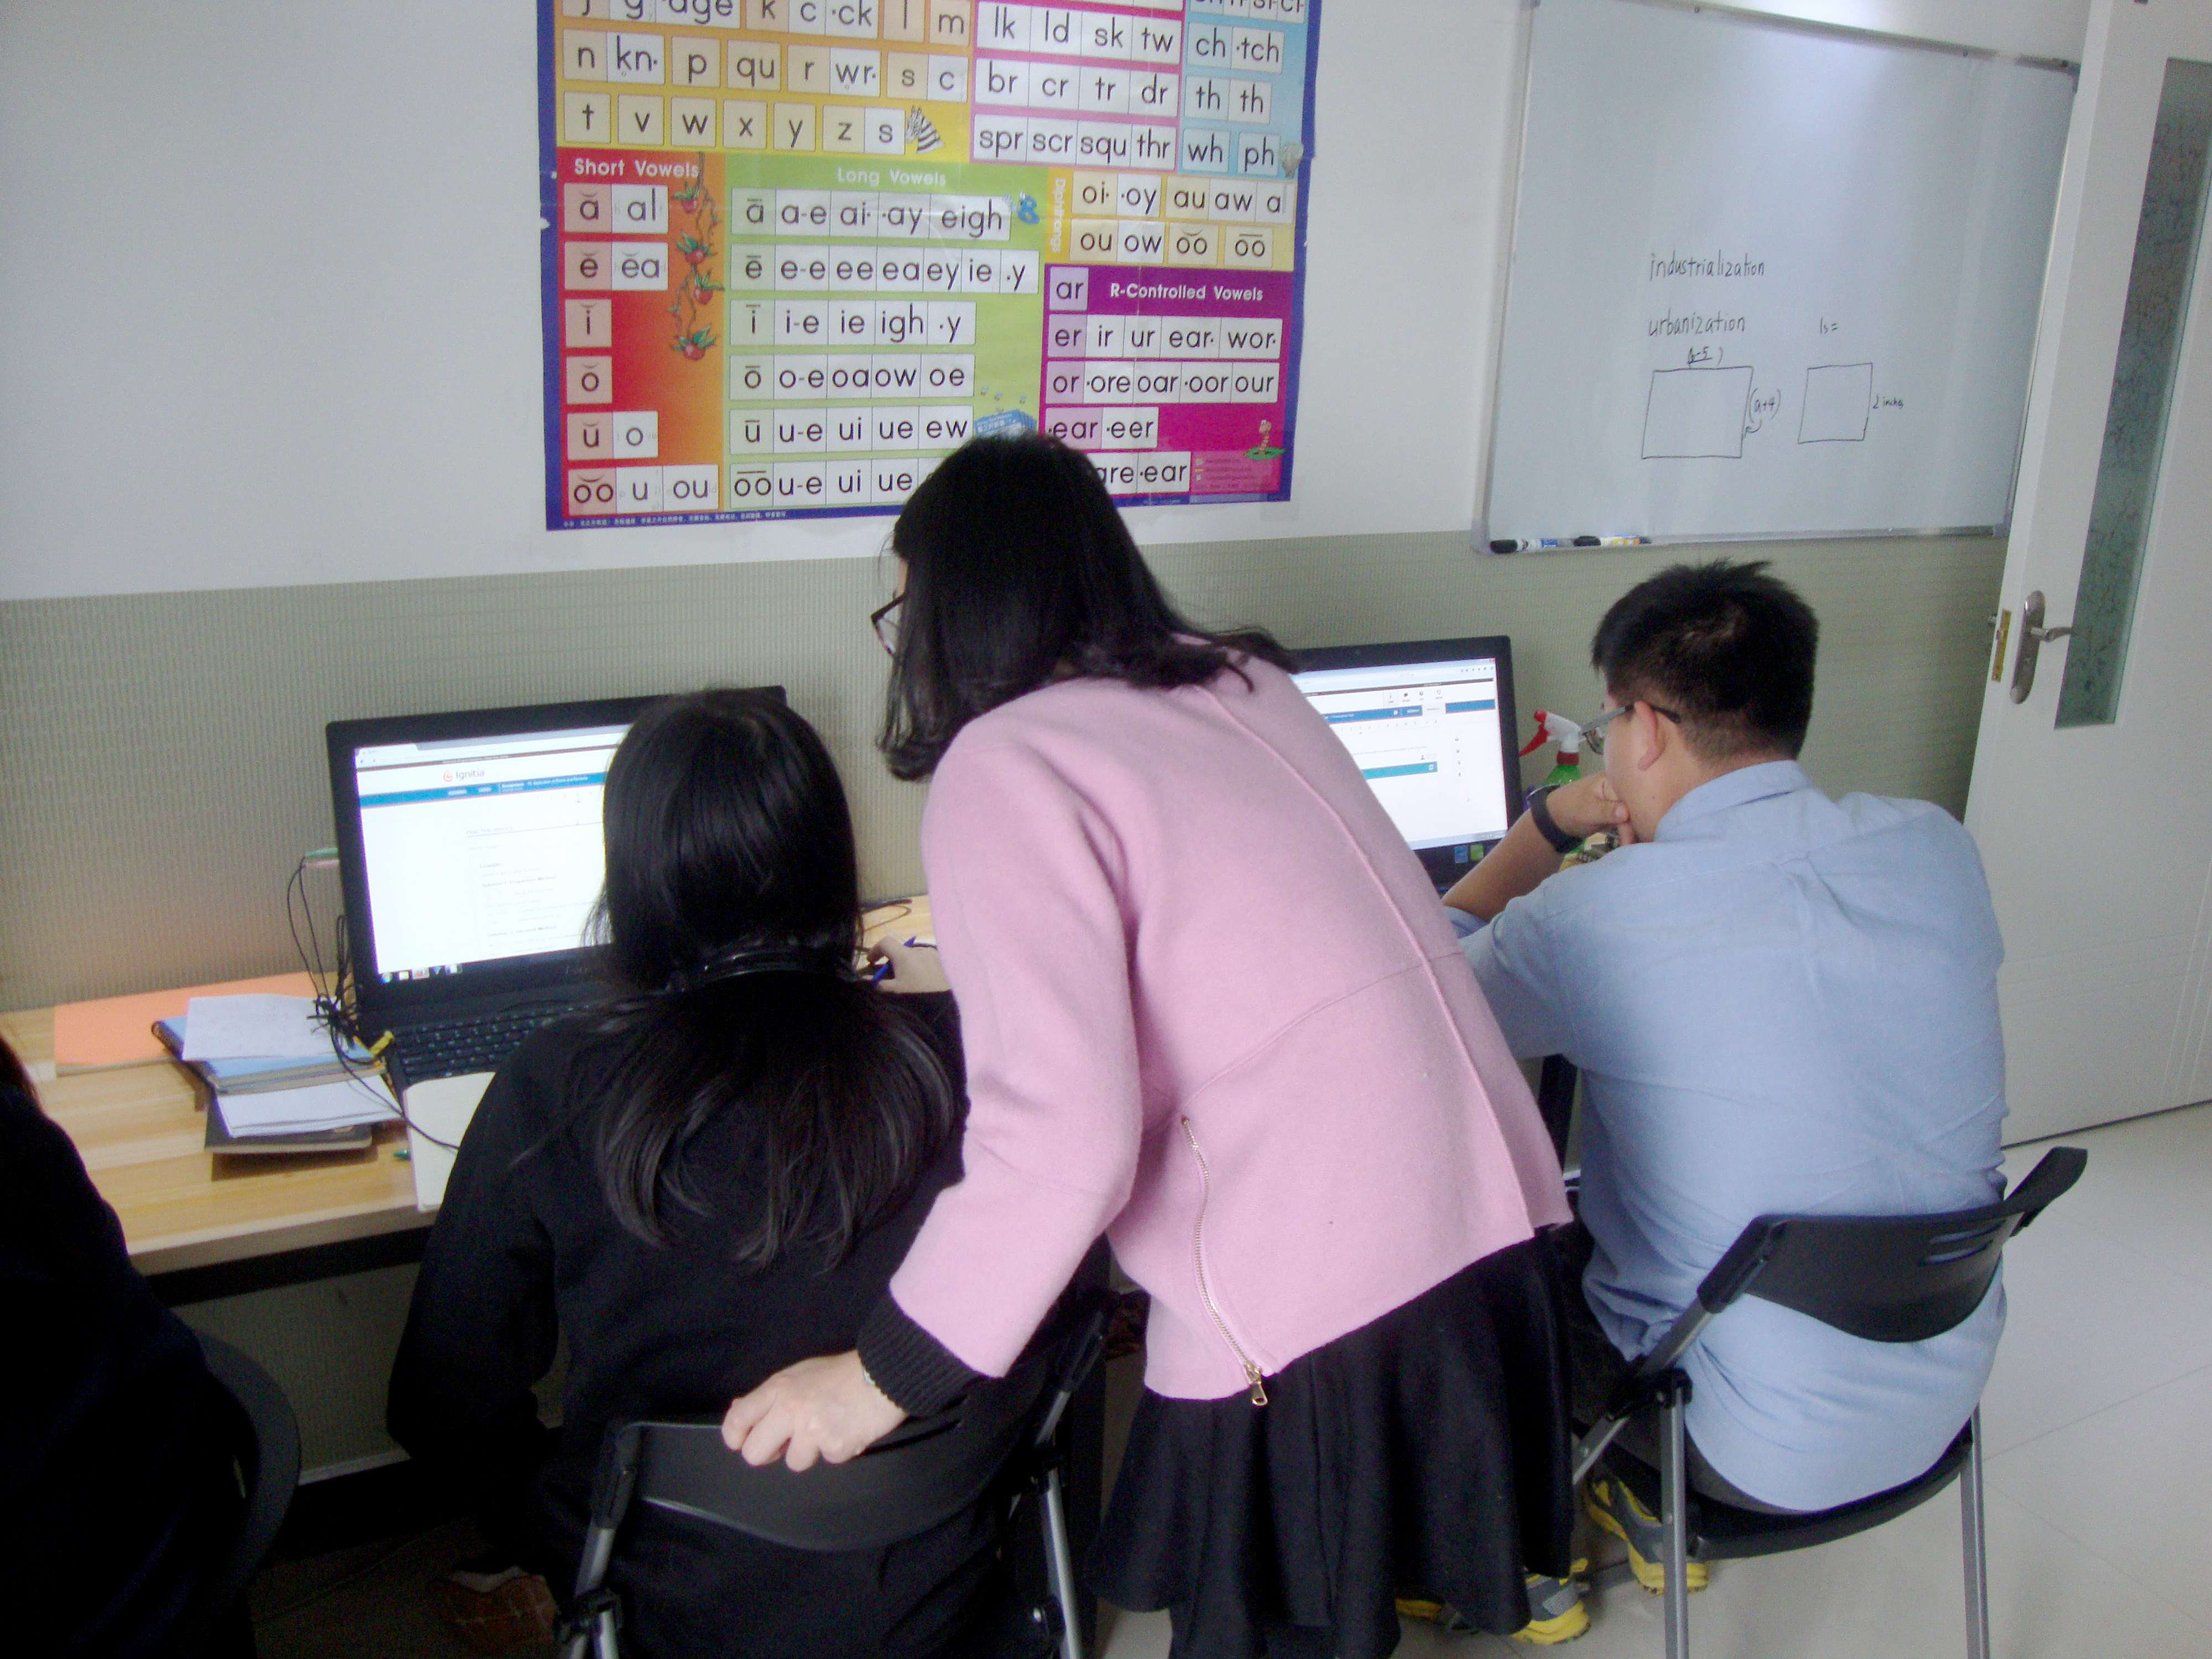 Students learn english using technology